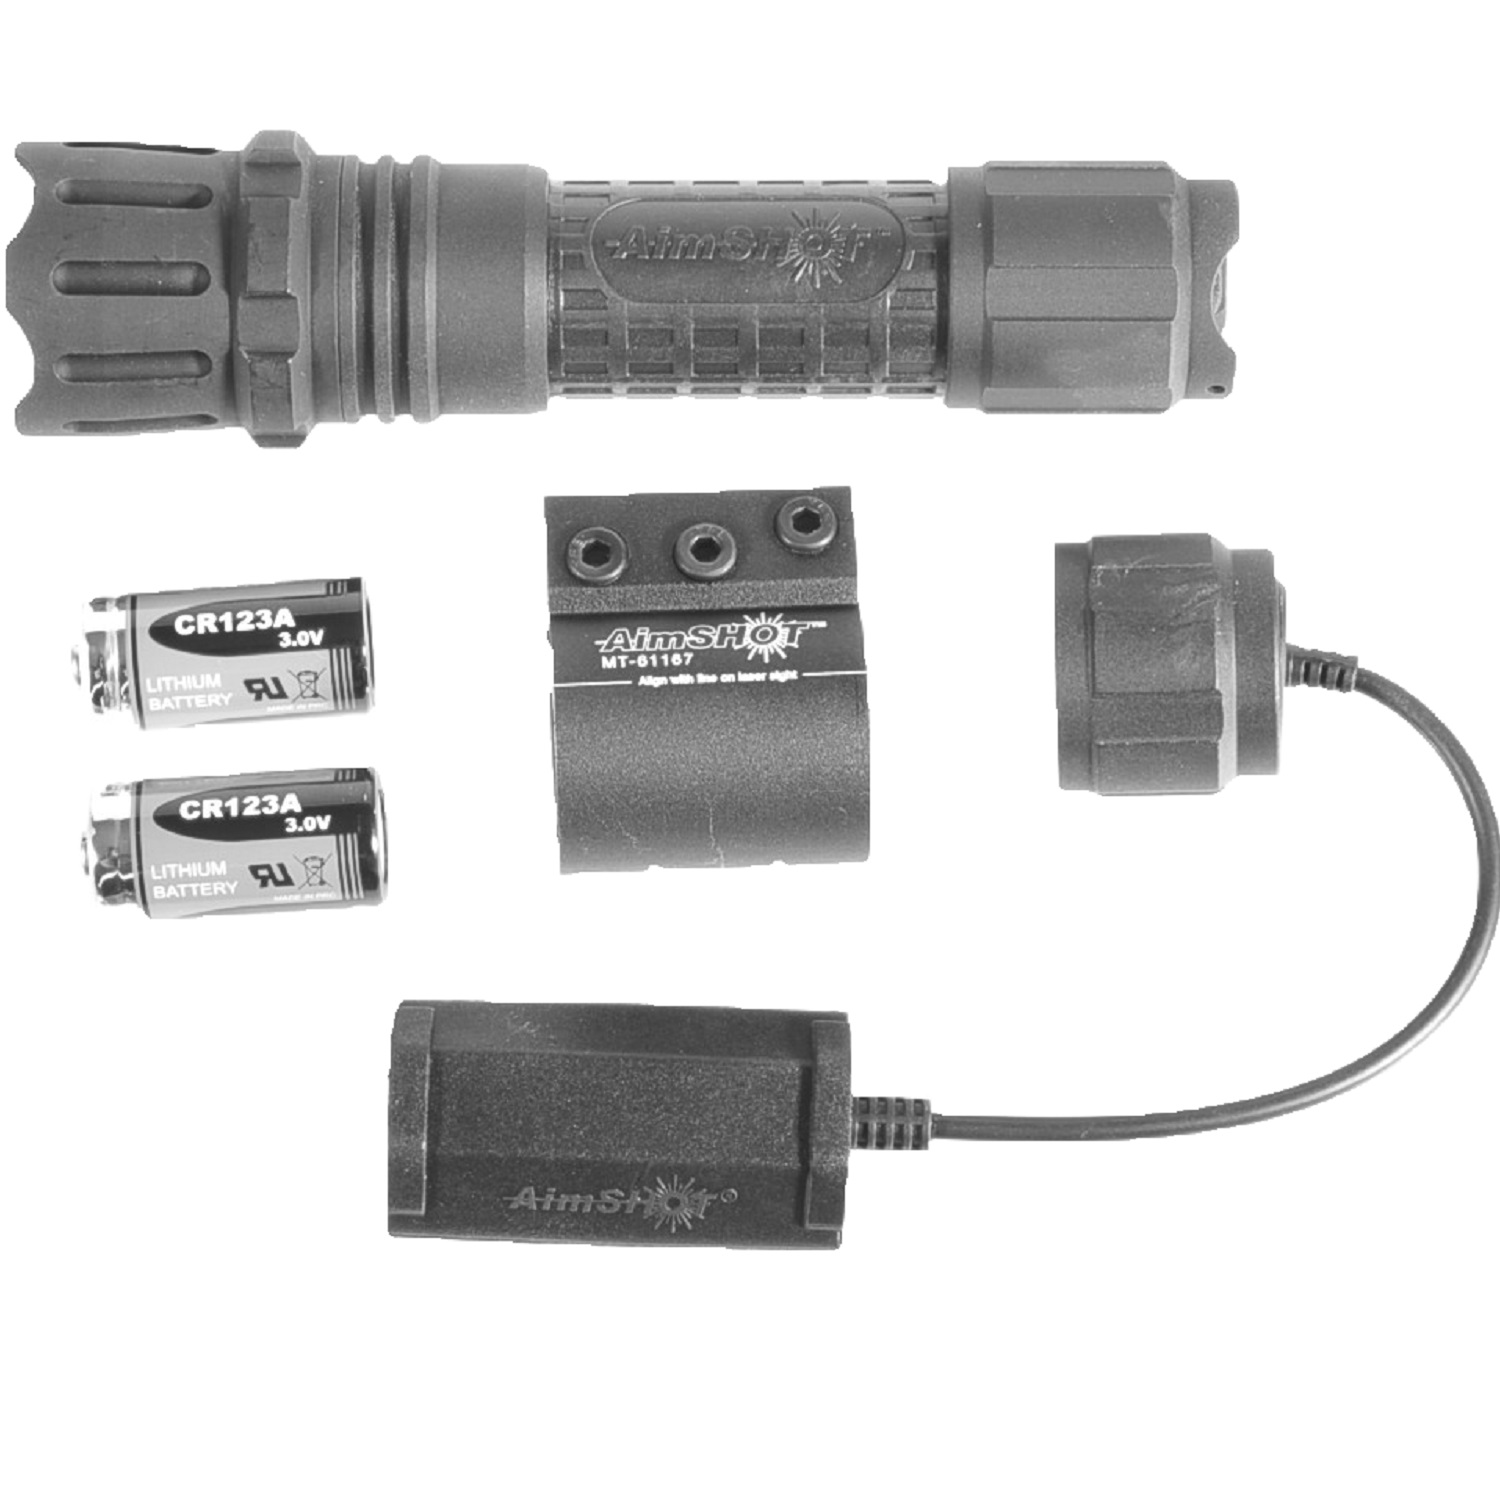 AimSHOT 250 Lumen Cree LED Flashlight Kit with Mount TX850